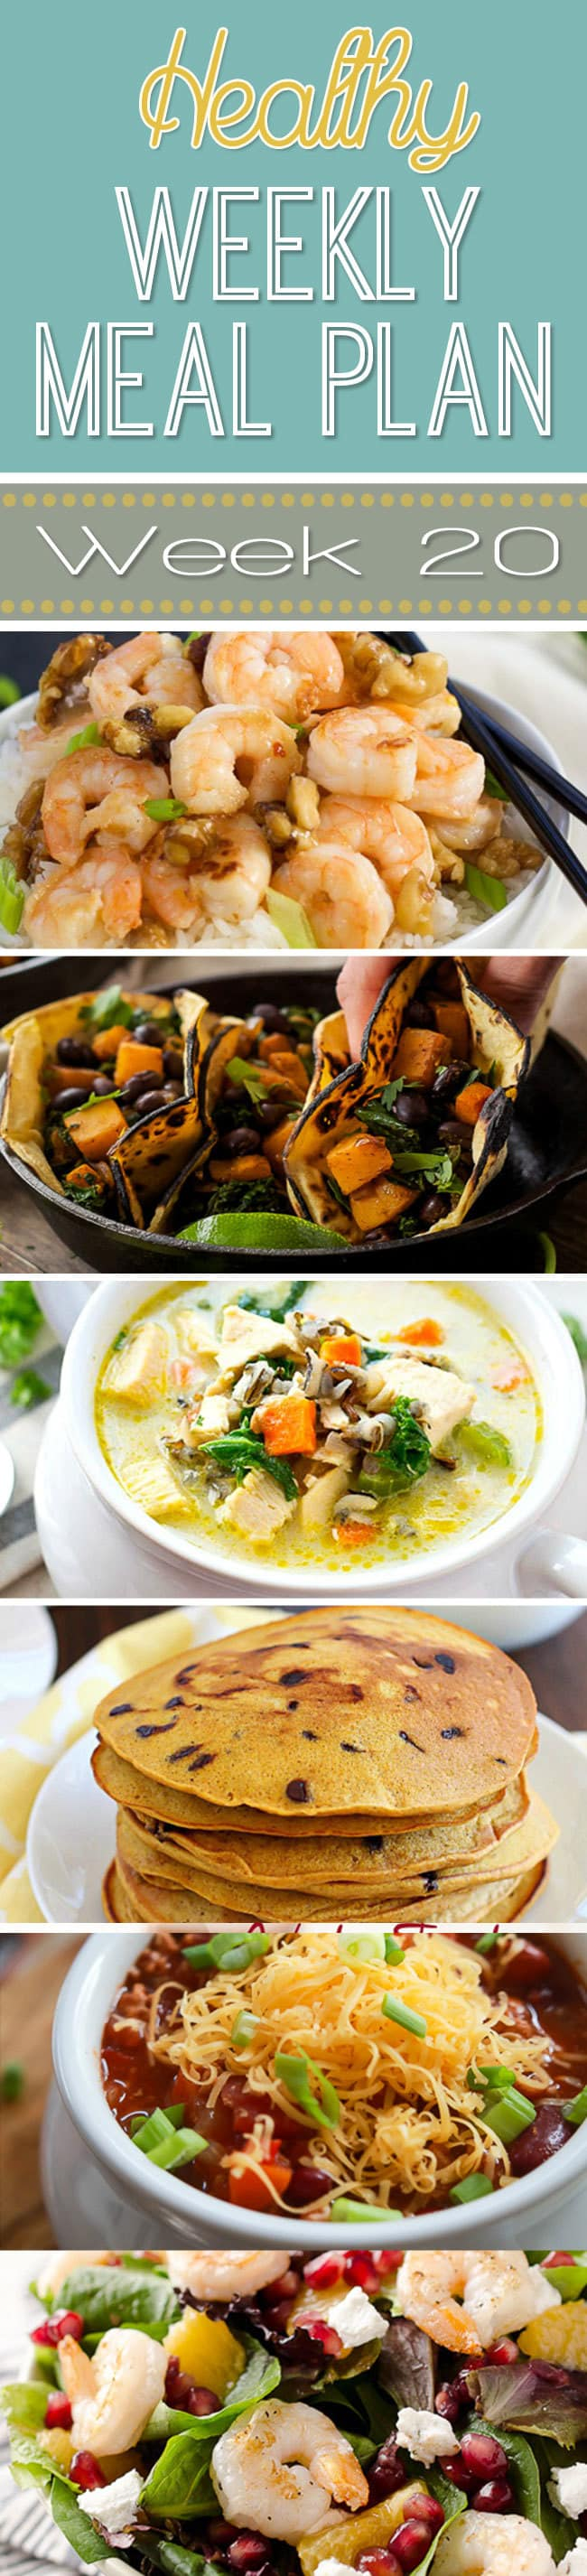 Healthy Weekly Meal Plan #20 is one of the best meal plans yet! It's full of delicious holiday meal ideas, quick dinners, and an easy lunch, snack and dessert recipe too! So many great recipes all in one roundup!